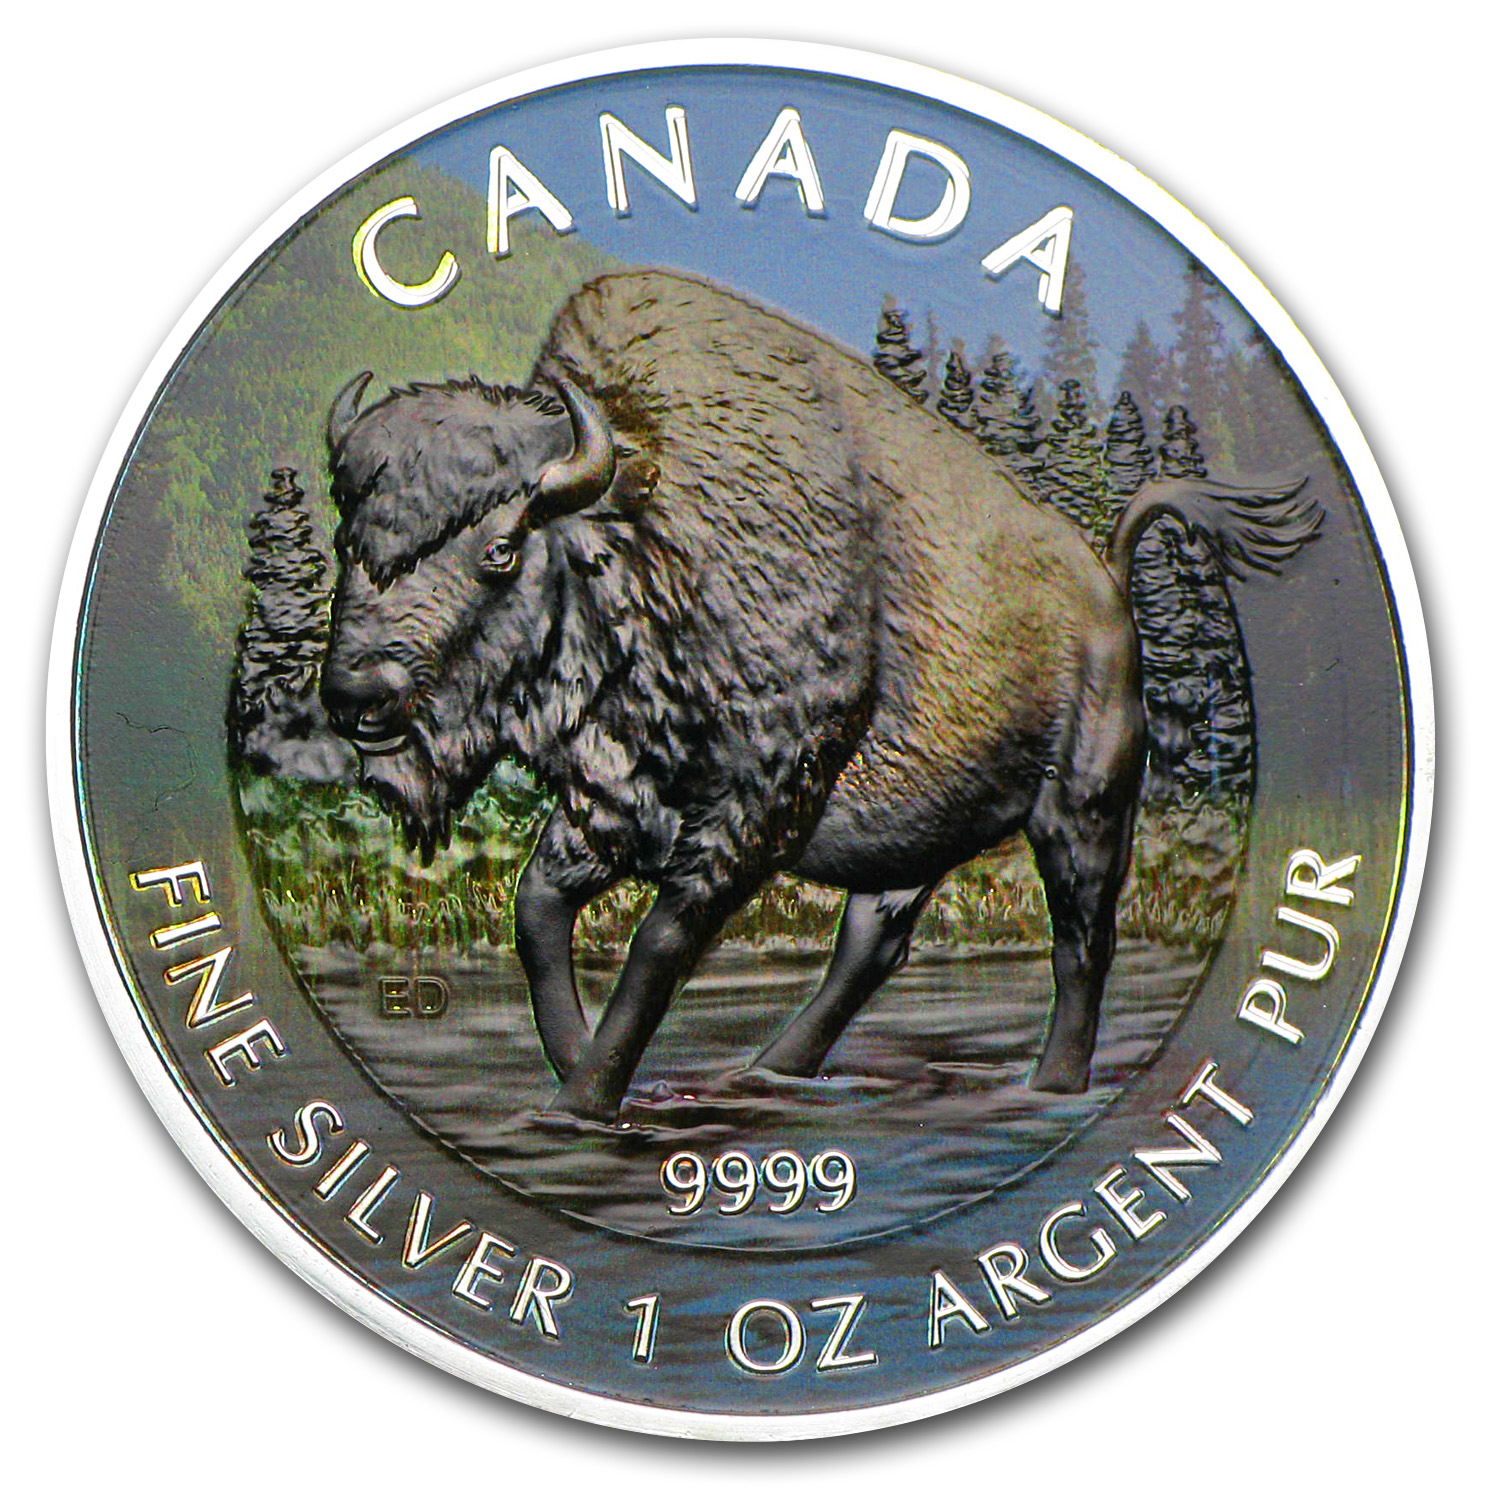 2013 1 oz Silver Canadian Wildlife Series Wood Bison (Full Color)